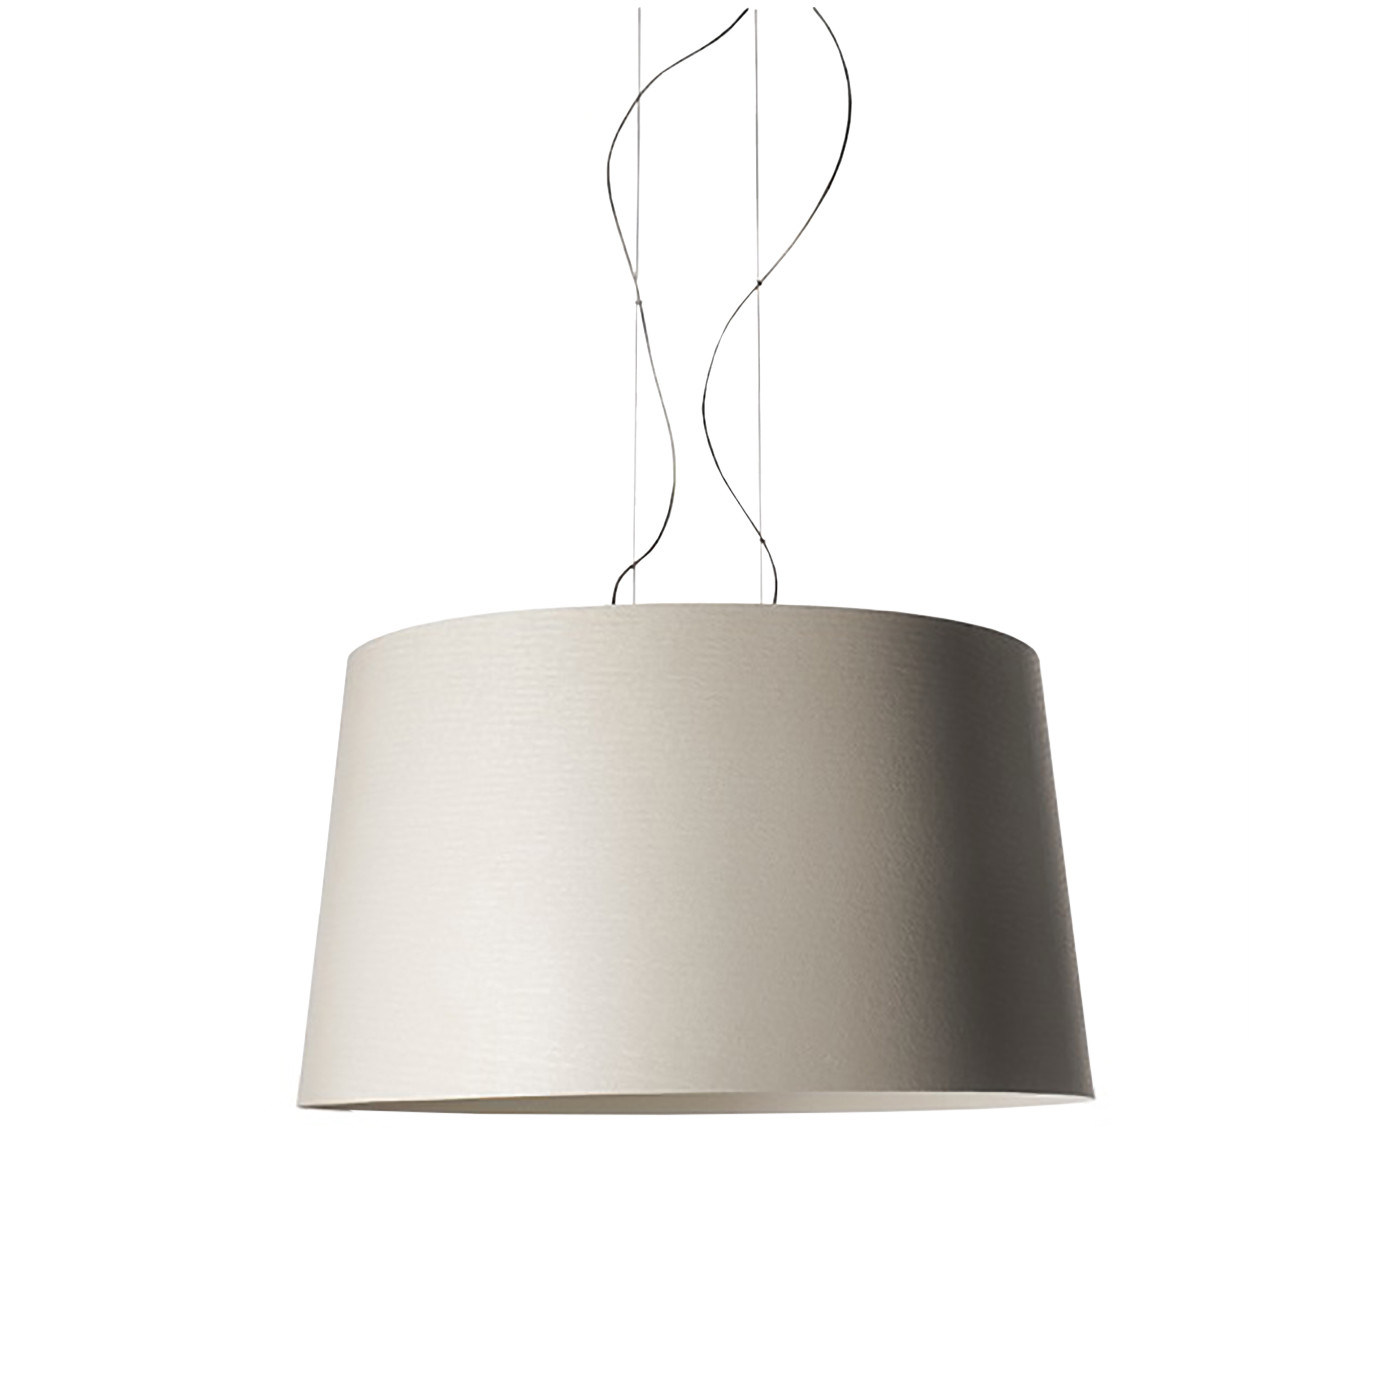 Foscarini Twice as Twiggy Sospensione